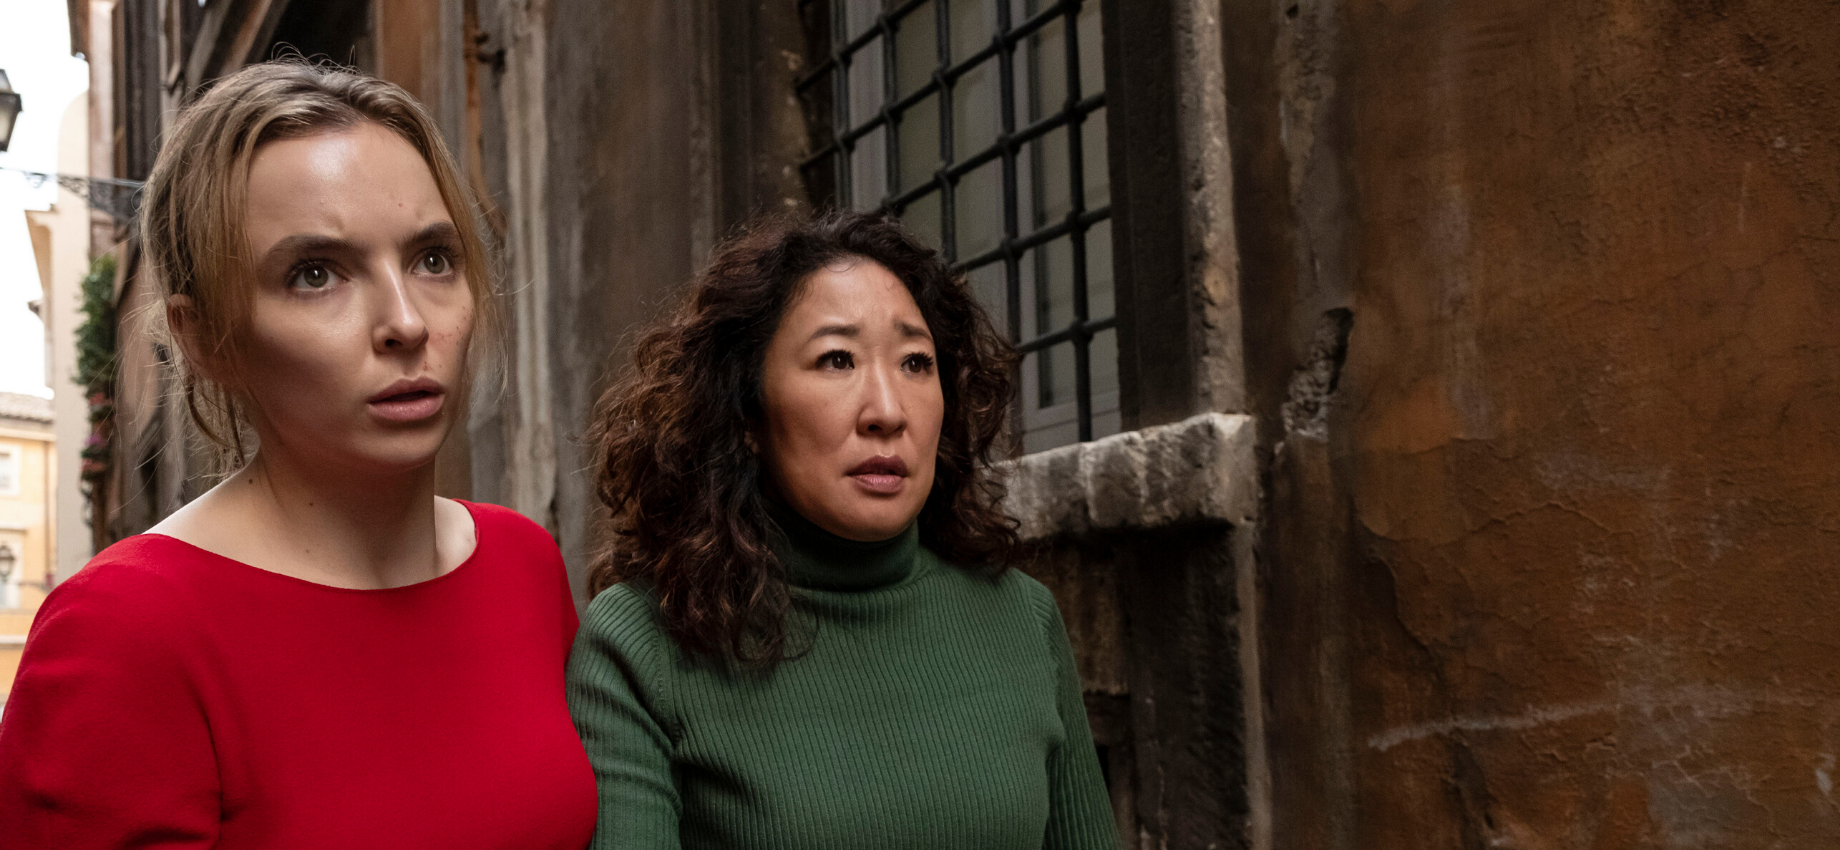 Killing Eve: #Villanelle Isn't Positive Queer Representation